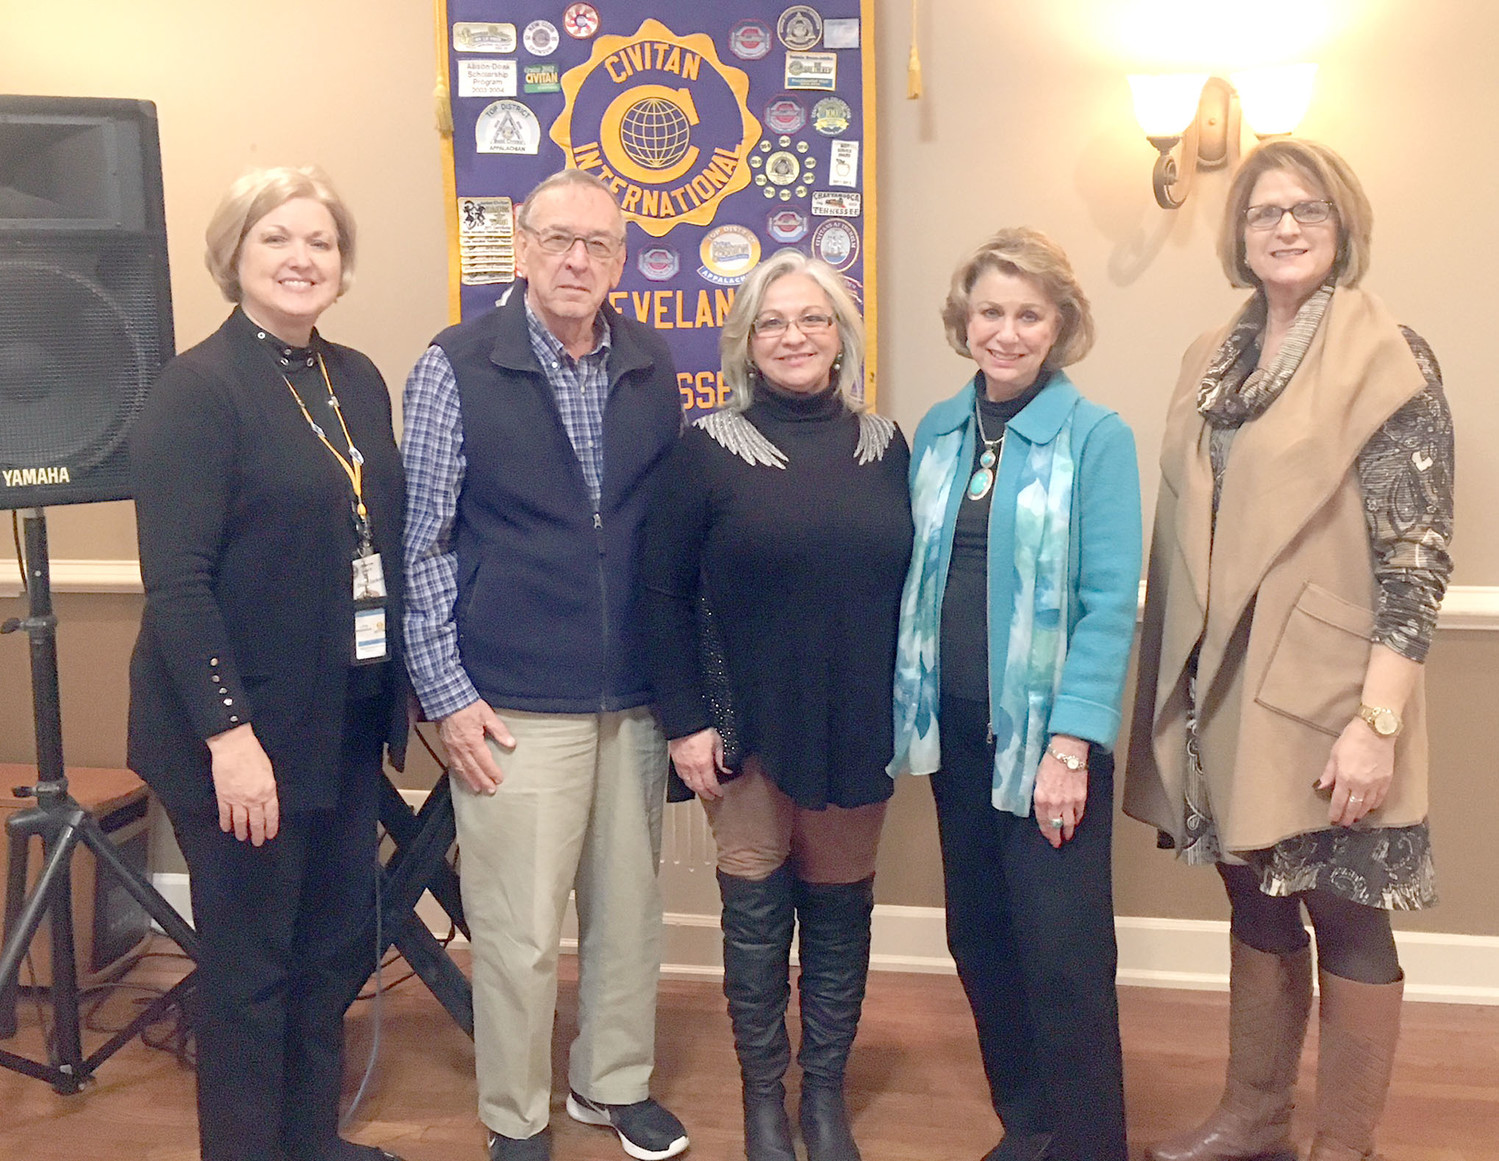 Civitan Club was recently addressed by Estela Liermann with U-GO Transportation and Angel's Time Home Care Assistance.  U-GO Transportation is an excellent resource for transportation for anyone who is not able to drive themselves to medical appoints and social events. Angel's Time provides non-medical home health aide and companion care service to seniors, elderly, mentally challenged and physically challenged adults.  Through coordinated care and support for clients and their families, Angel's Time Inc. enables individuals to remain in the safety and comfort of their own home environments for as long as possible.  Angel's Time, Inc. also serves clients transitioning back home from an assisted living or hospital setting. Liermann began both companies to reach out to people in our community with unmet needs.  From left are Diana Jackson, David Cummings, Liermann, Linda Wheeler and Teresa Davis.